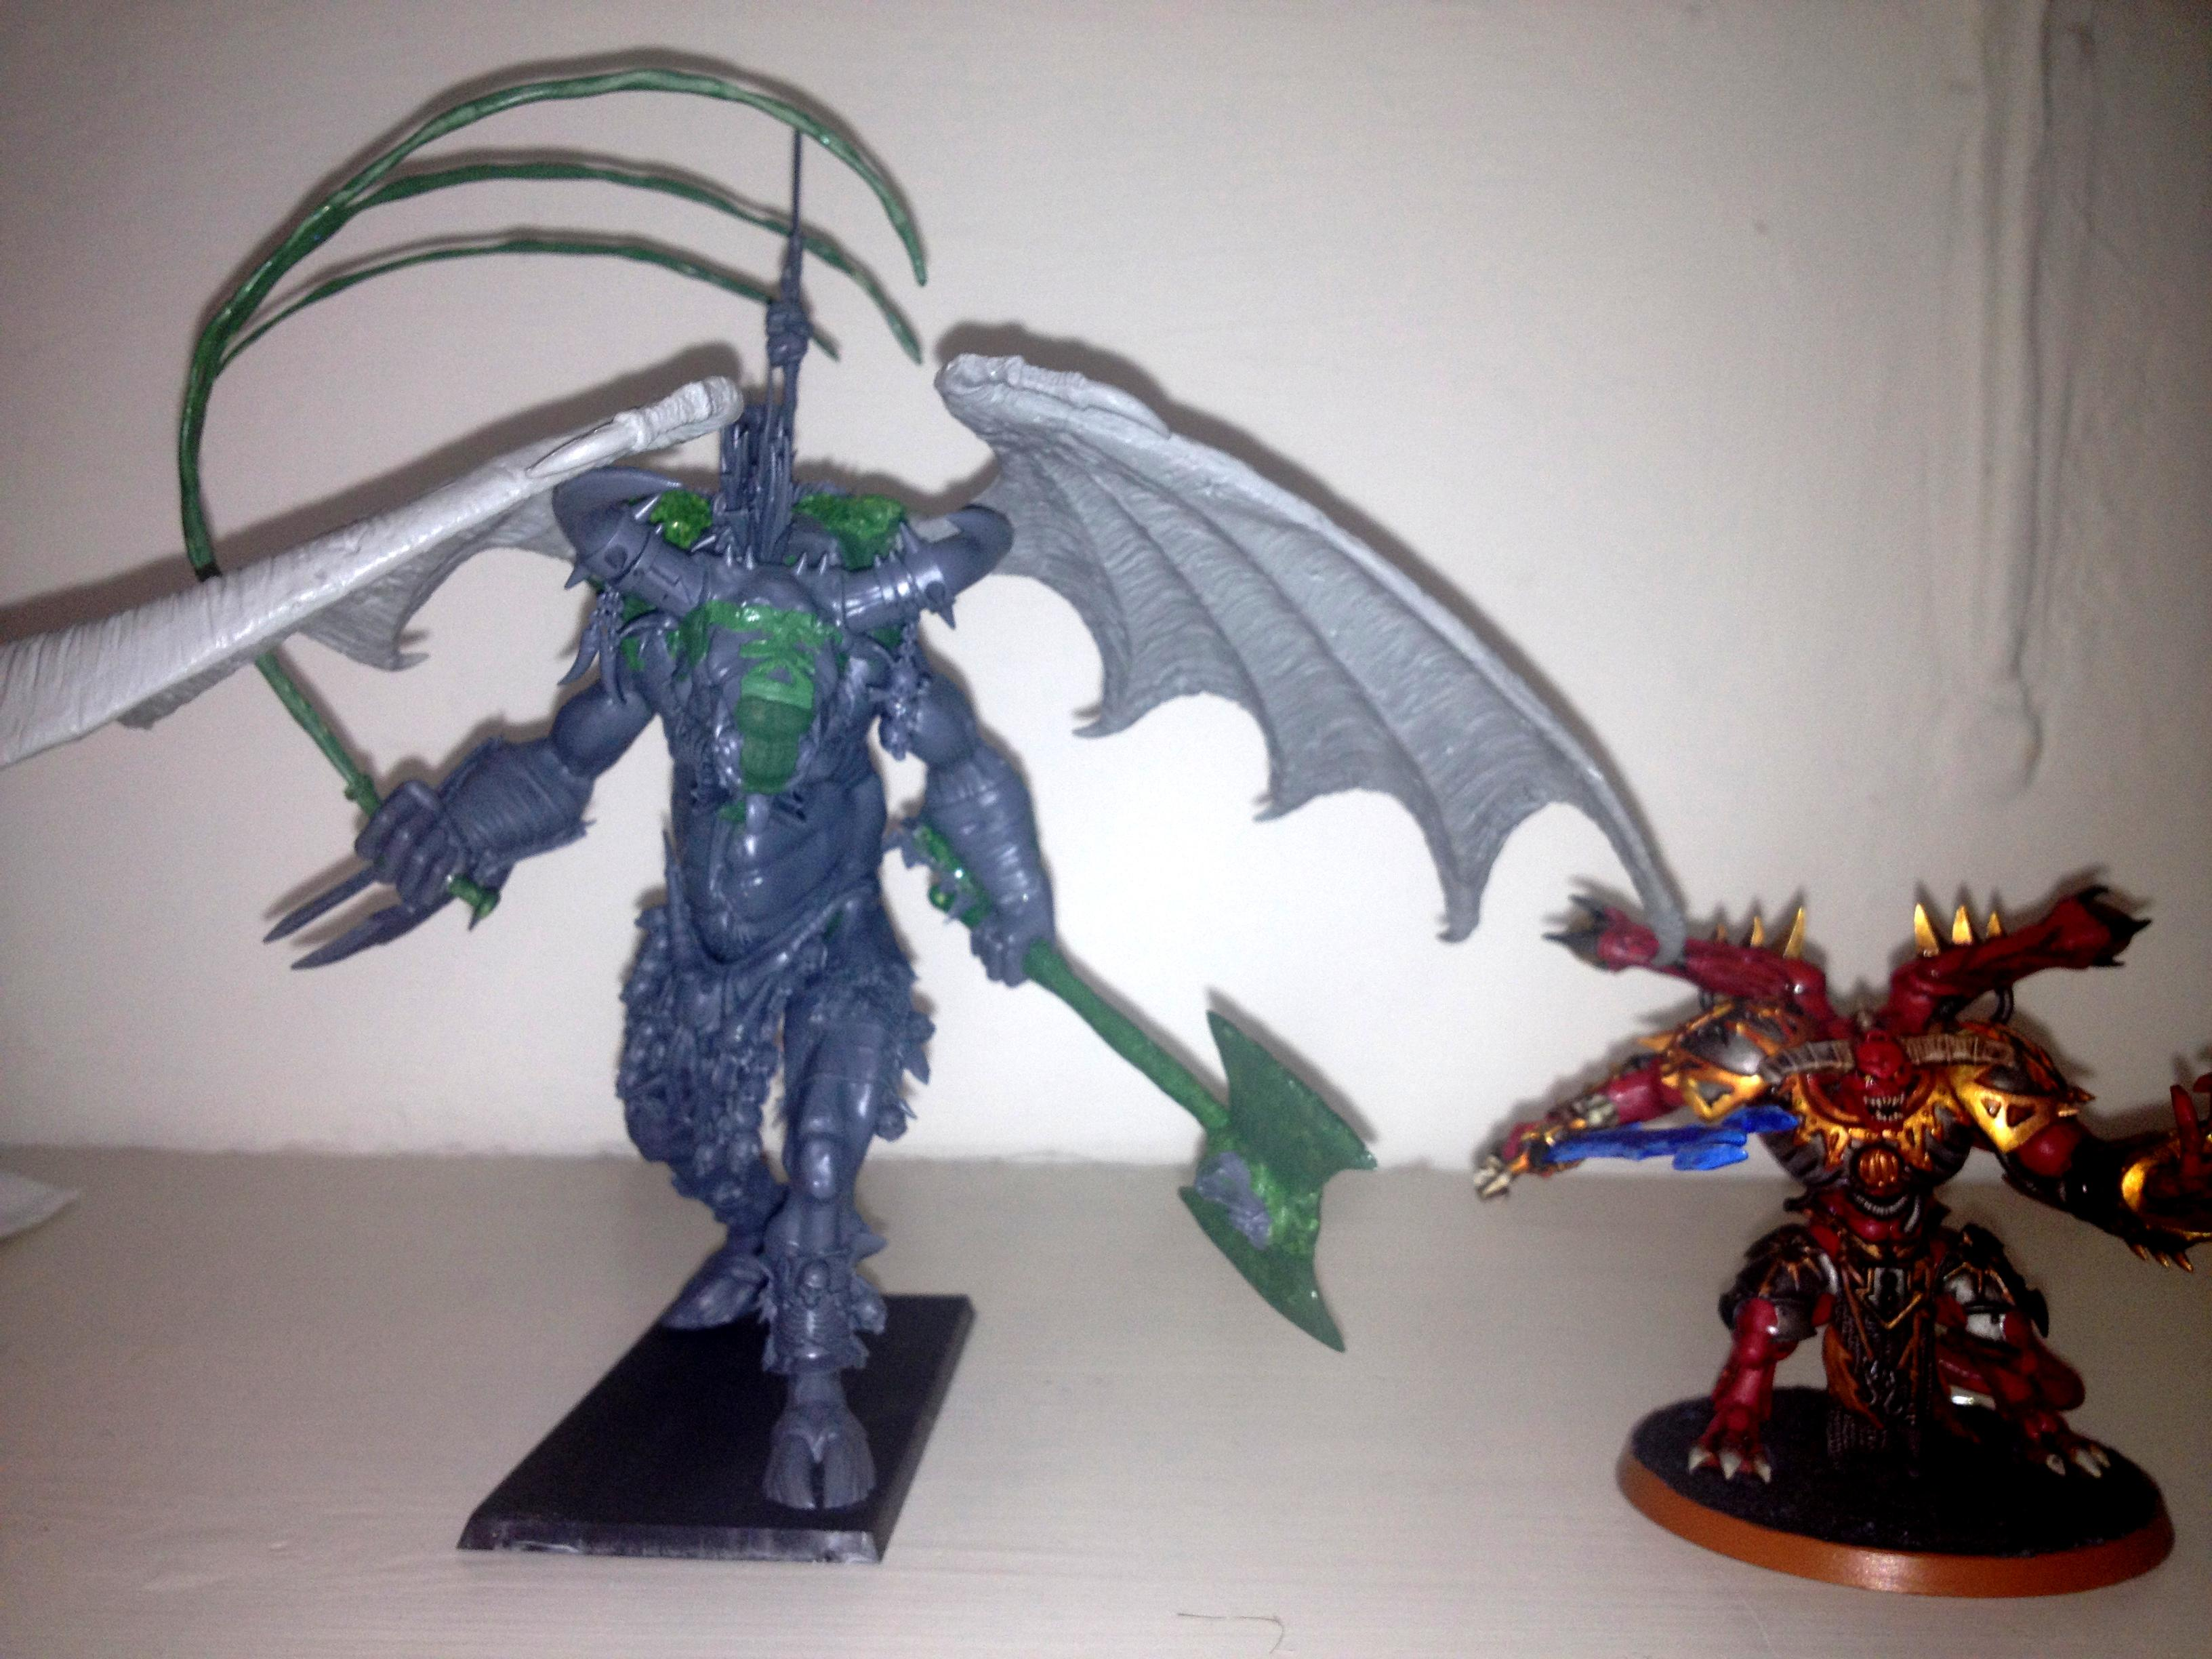 Complete - with Daemon Prince for scale